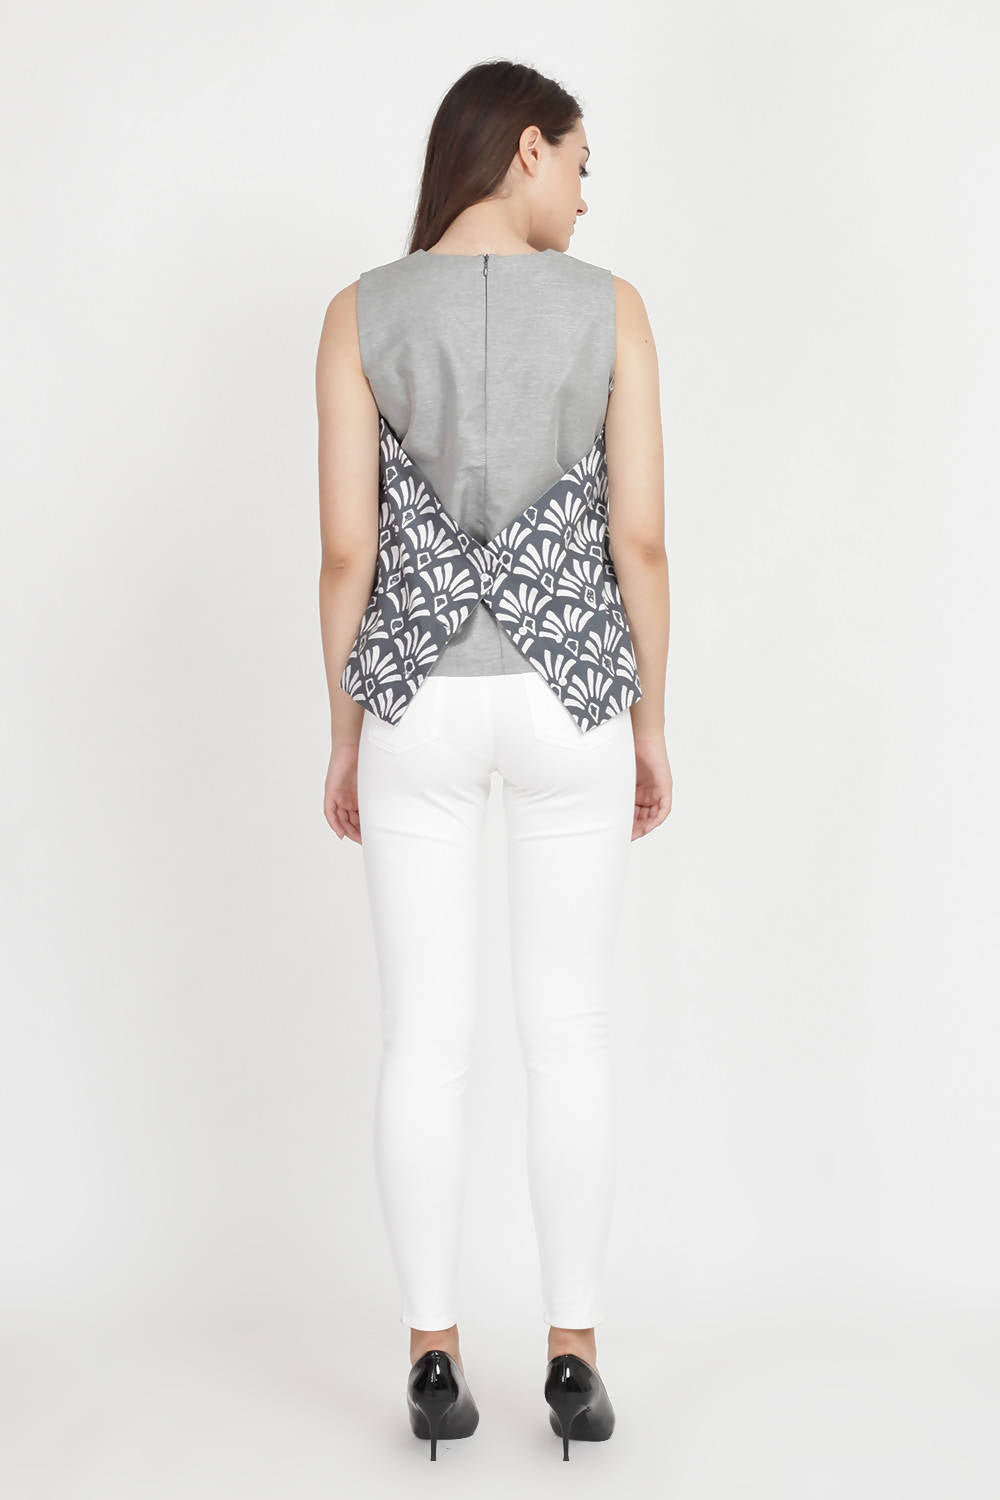 Solemn Batik Top in Grey